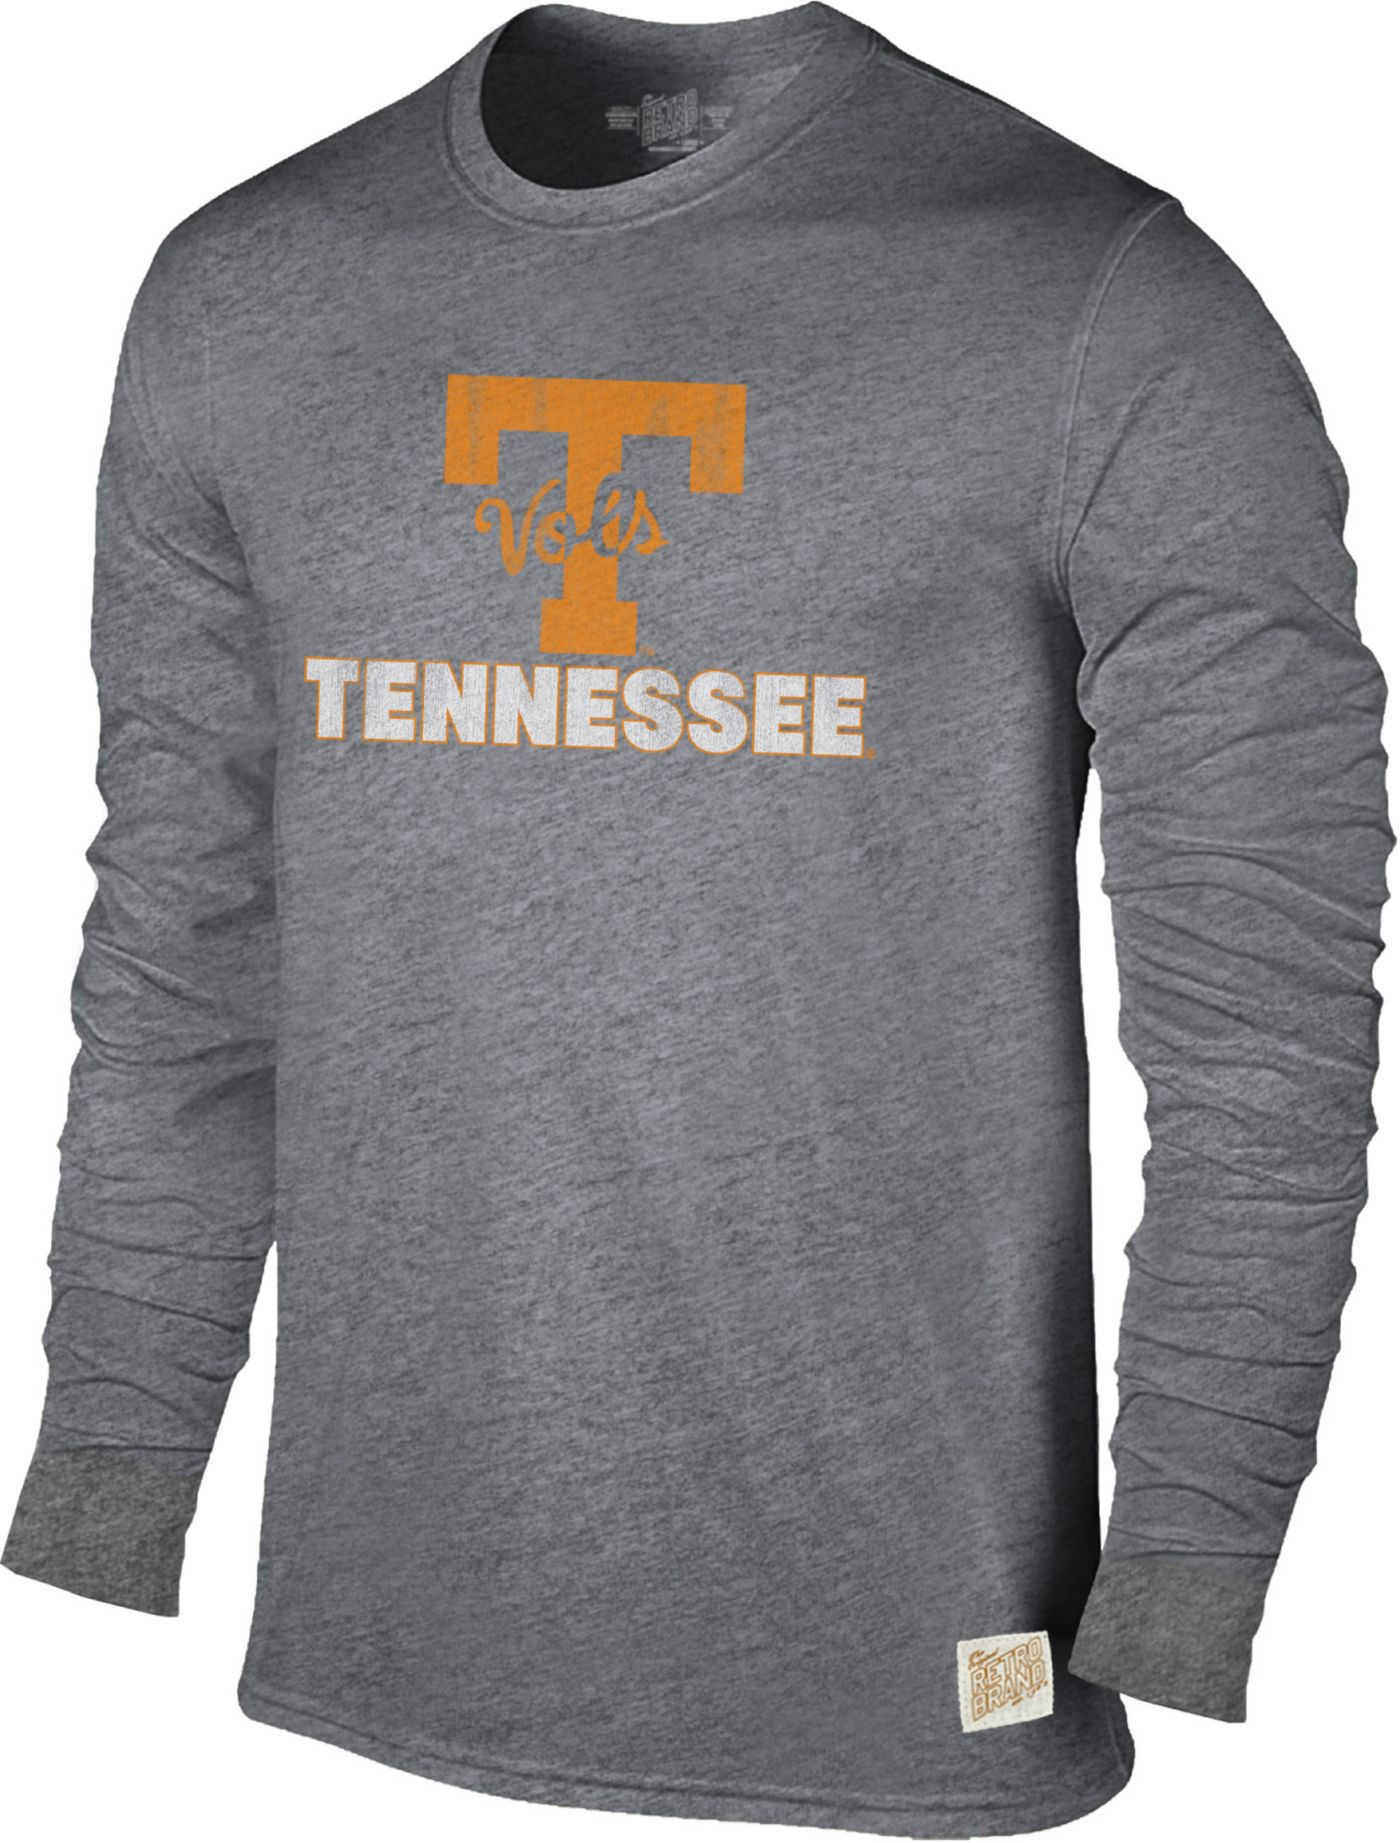 Original Retro Brand Men's Tennessee Volunteers Grey Tri-Blend Long Sleeve T-Shirt